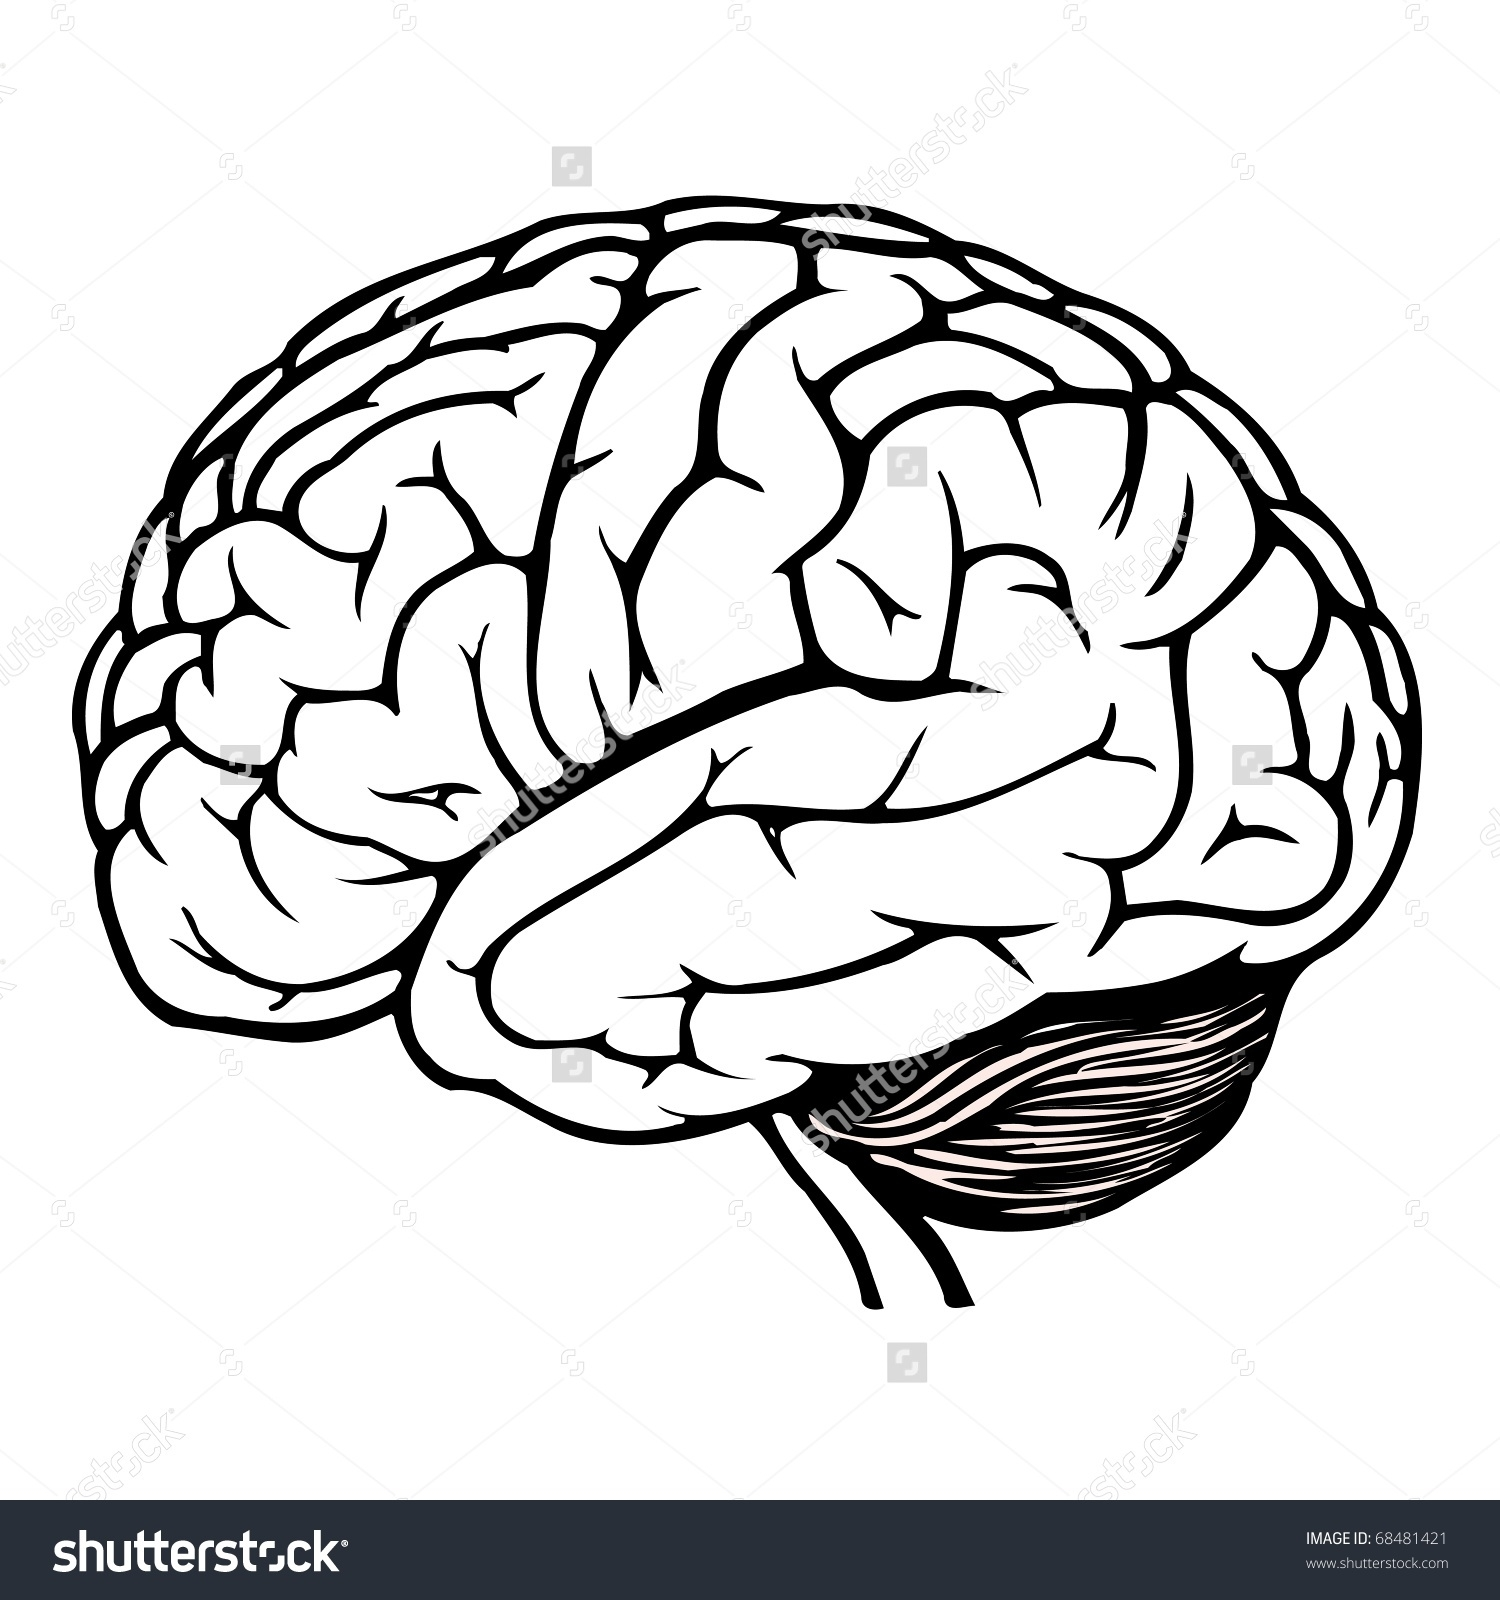 1500x1600 Human Brain Clipart Black And White Letters Example